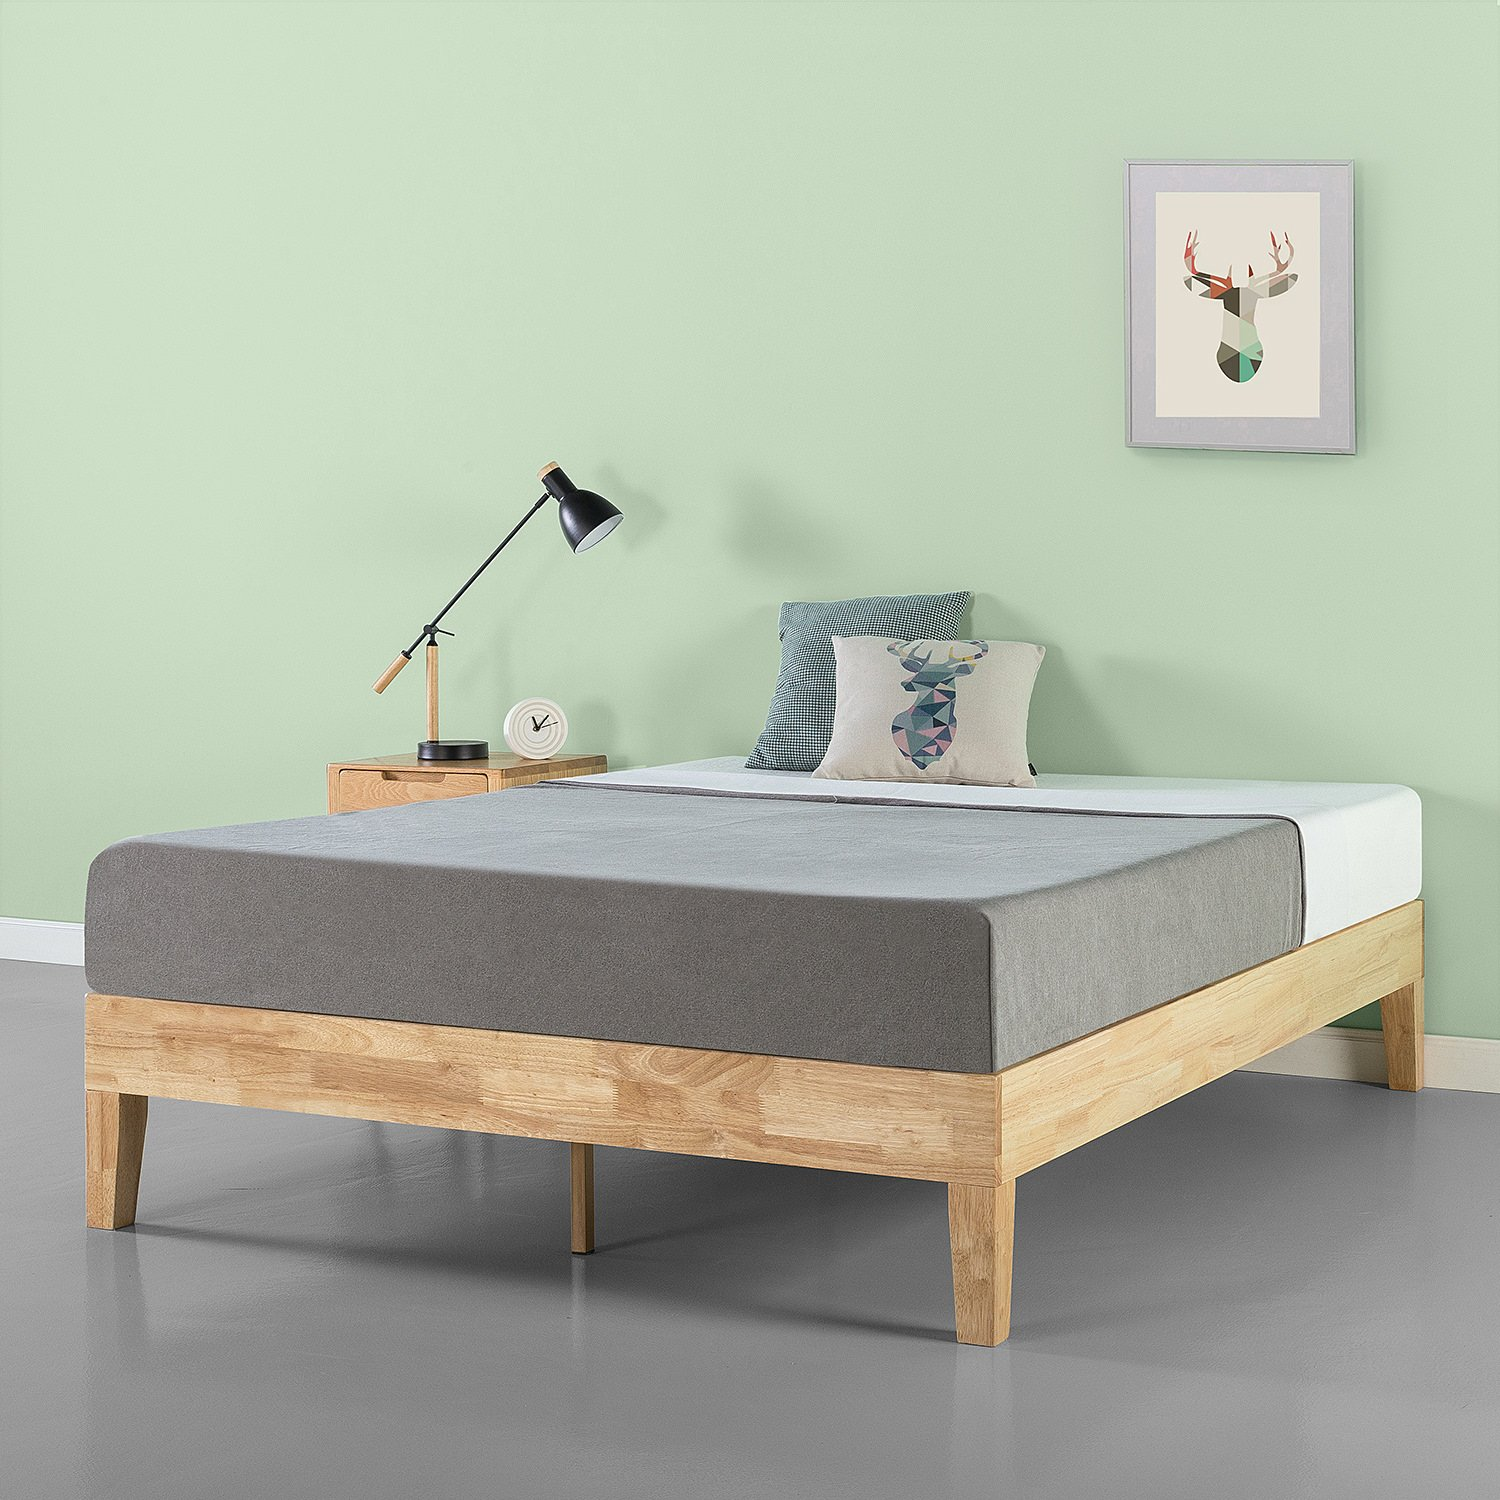 Zinus Moiz 14 Inch Deluxe Solid Wood Platform Bed Frame with Wood Slat Support No Box Spring Needed, Queen